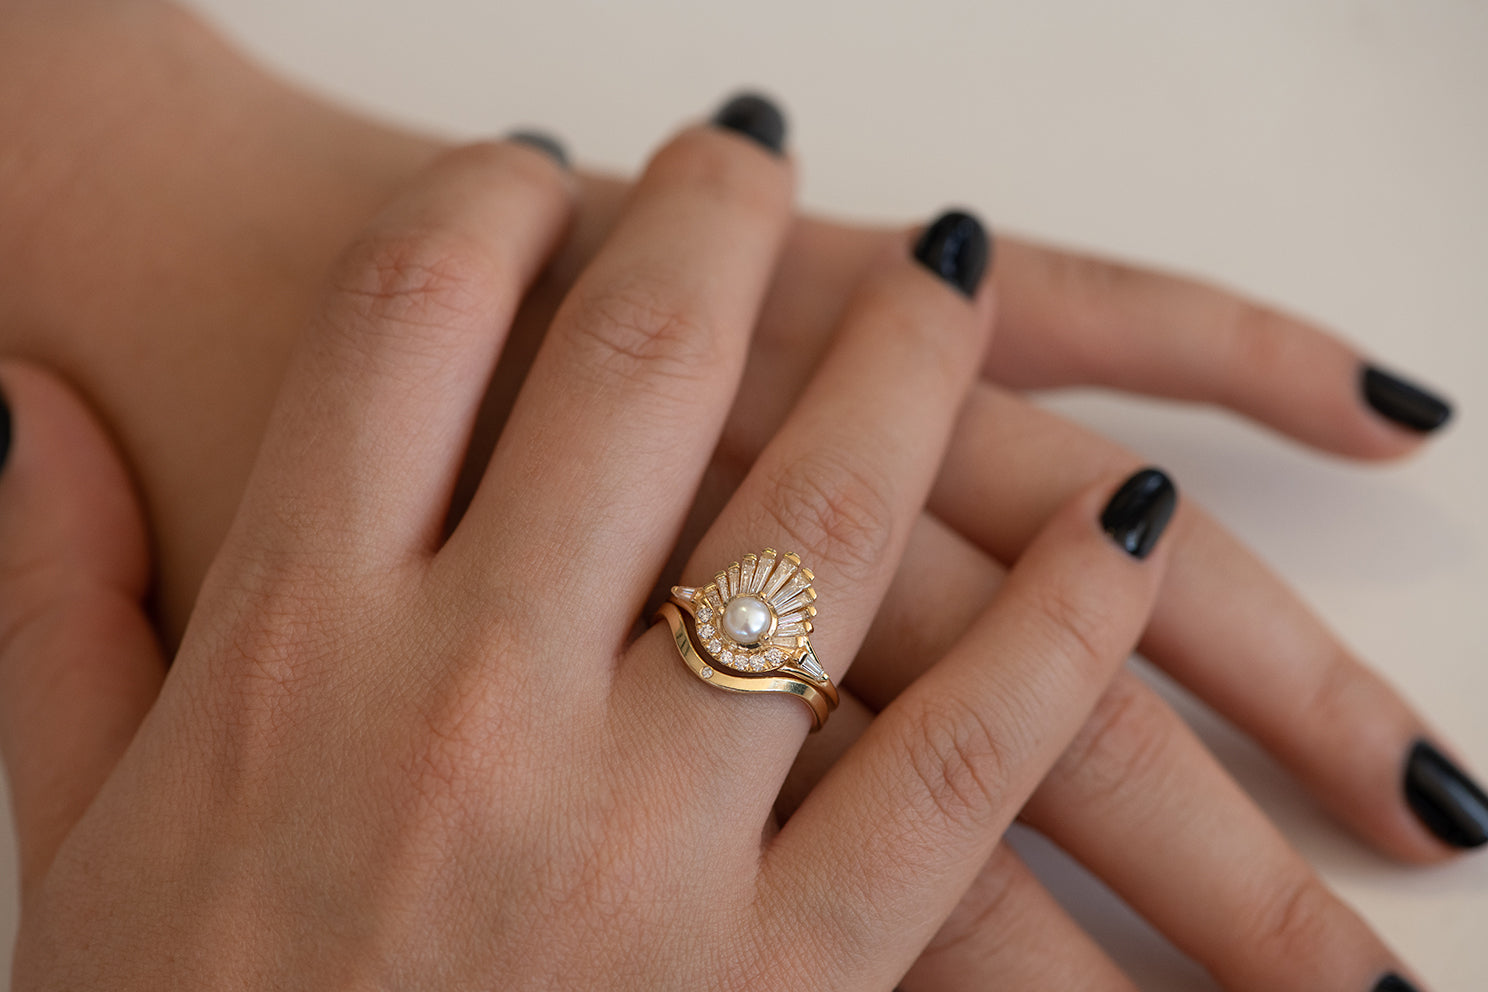 Diamond and Pearl Engagement Ring - Baguette Diamond Shell Ring on Hand in Set